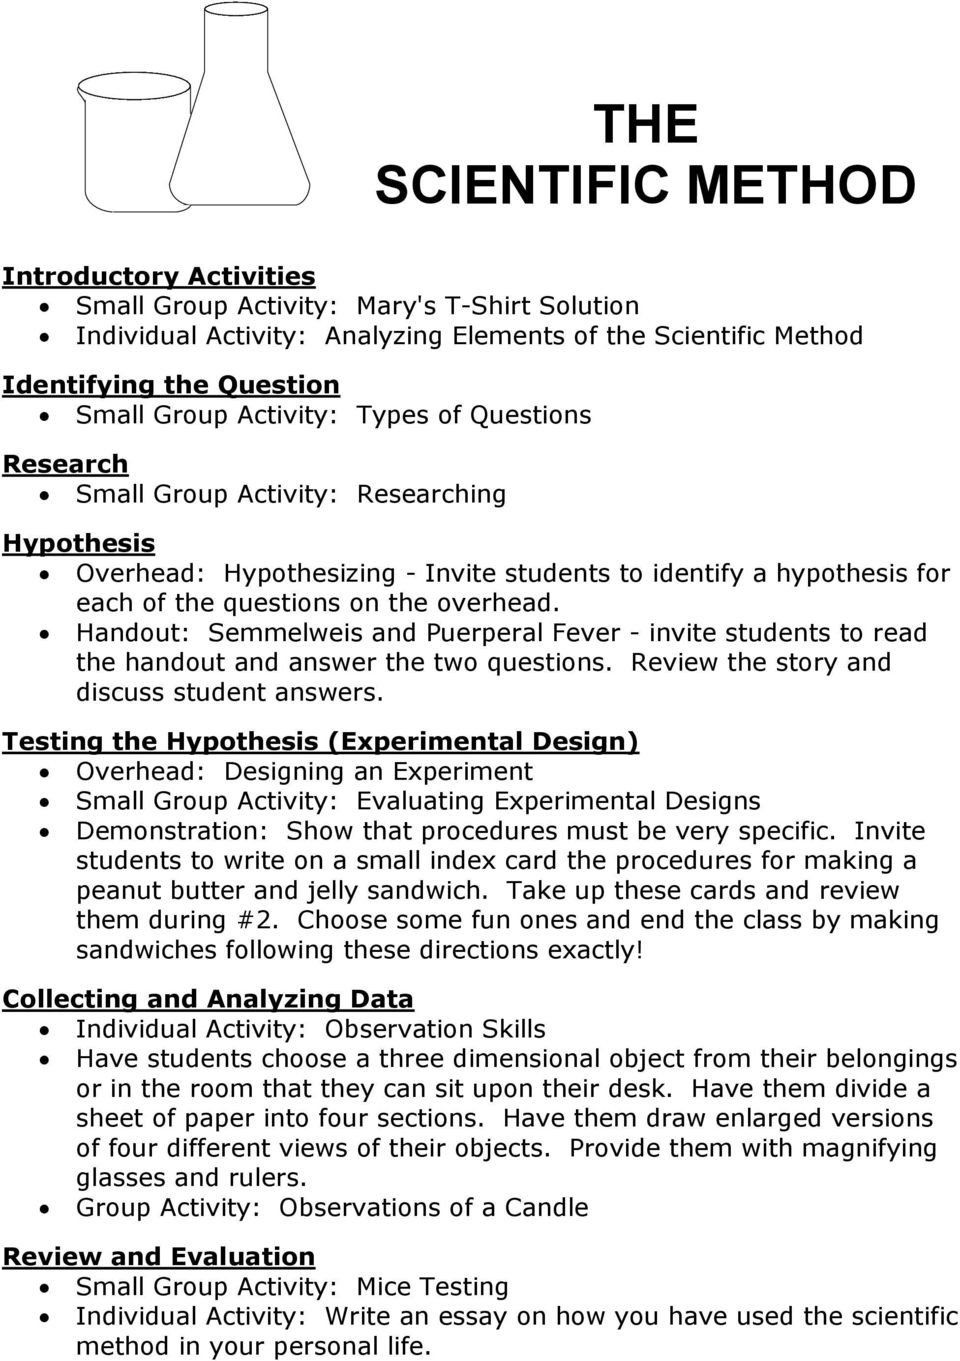 Scientific Method Story Worksheet the Scientific Method